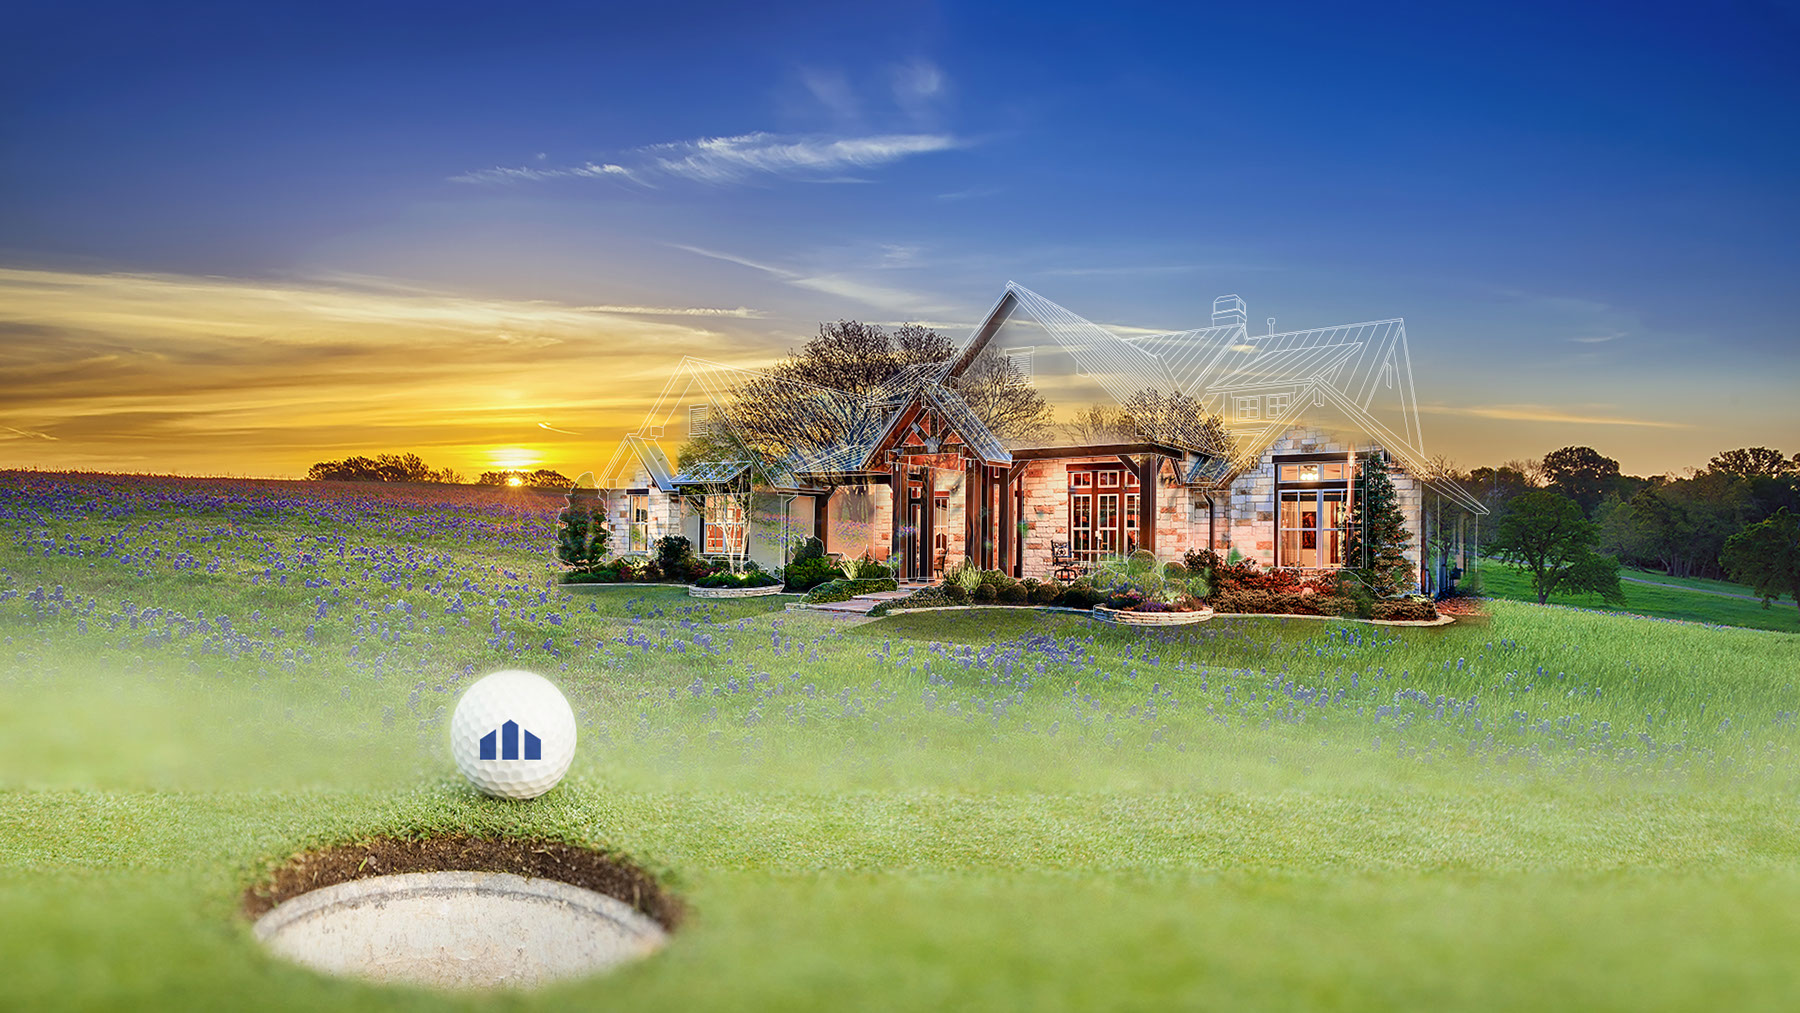 build a home, putt to win it | design tech homes promotion